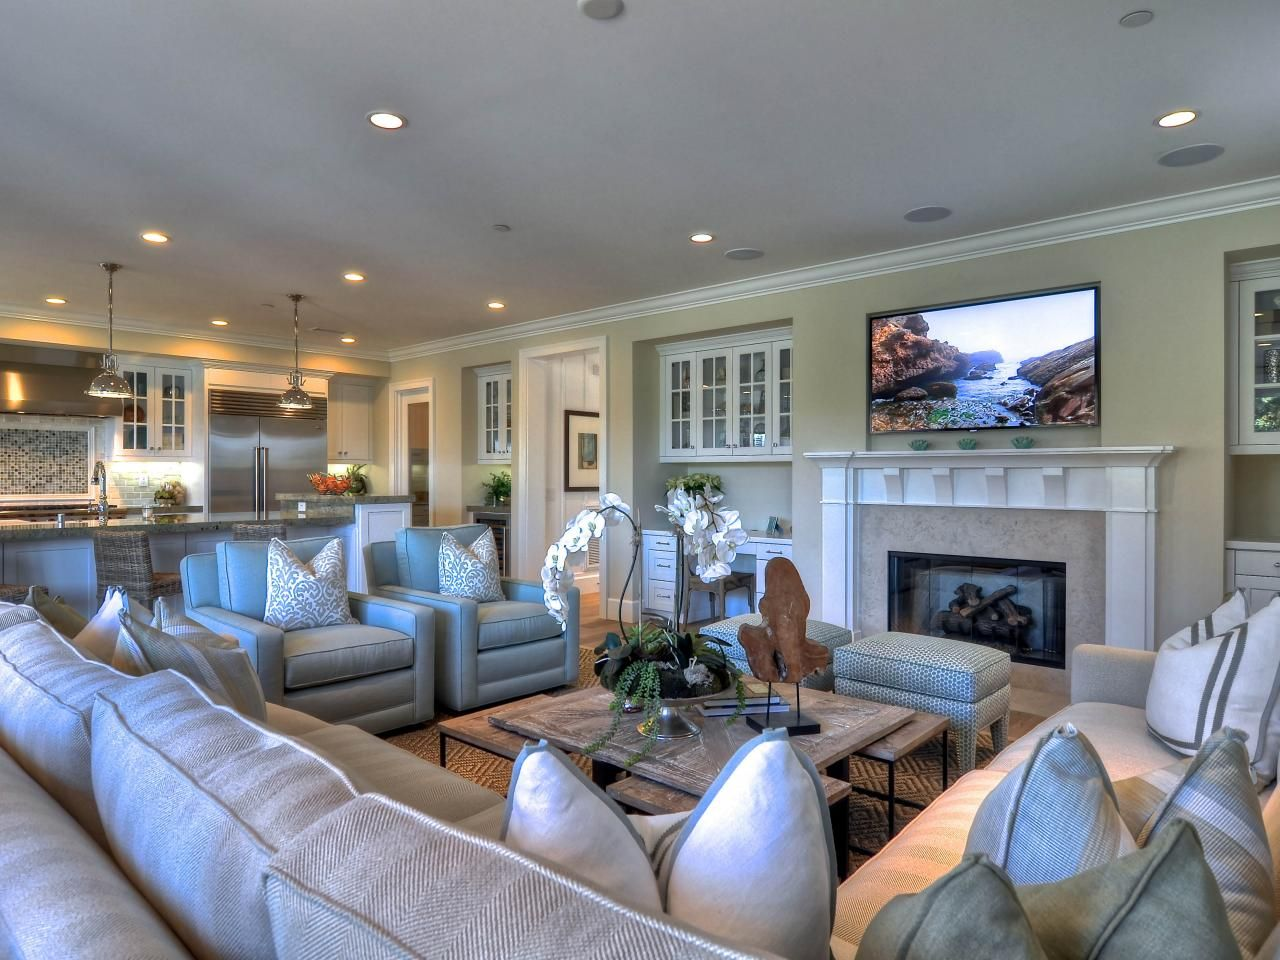 Coastal decor is found in the details in this spacious for Open living room designs